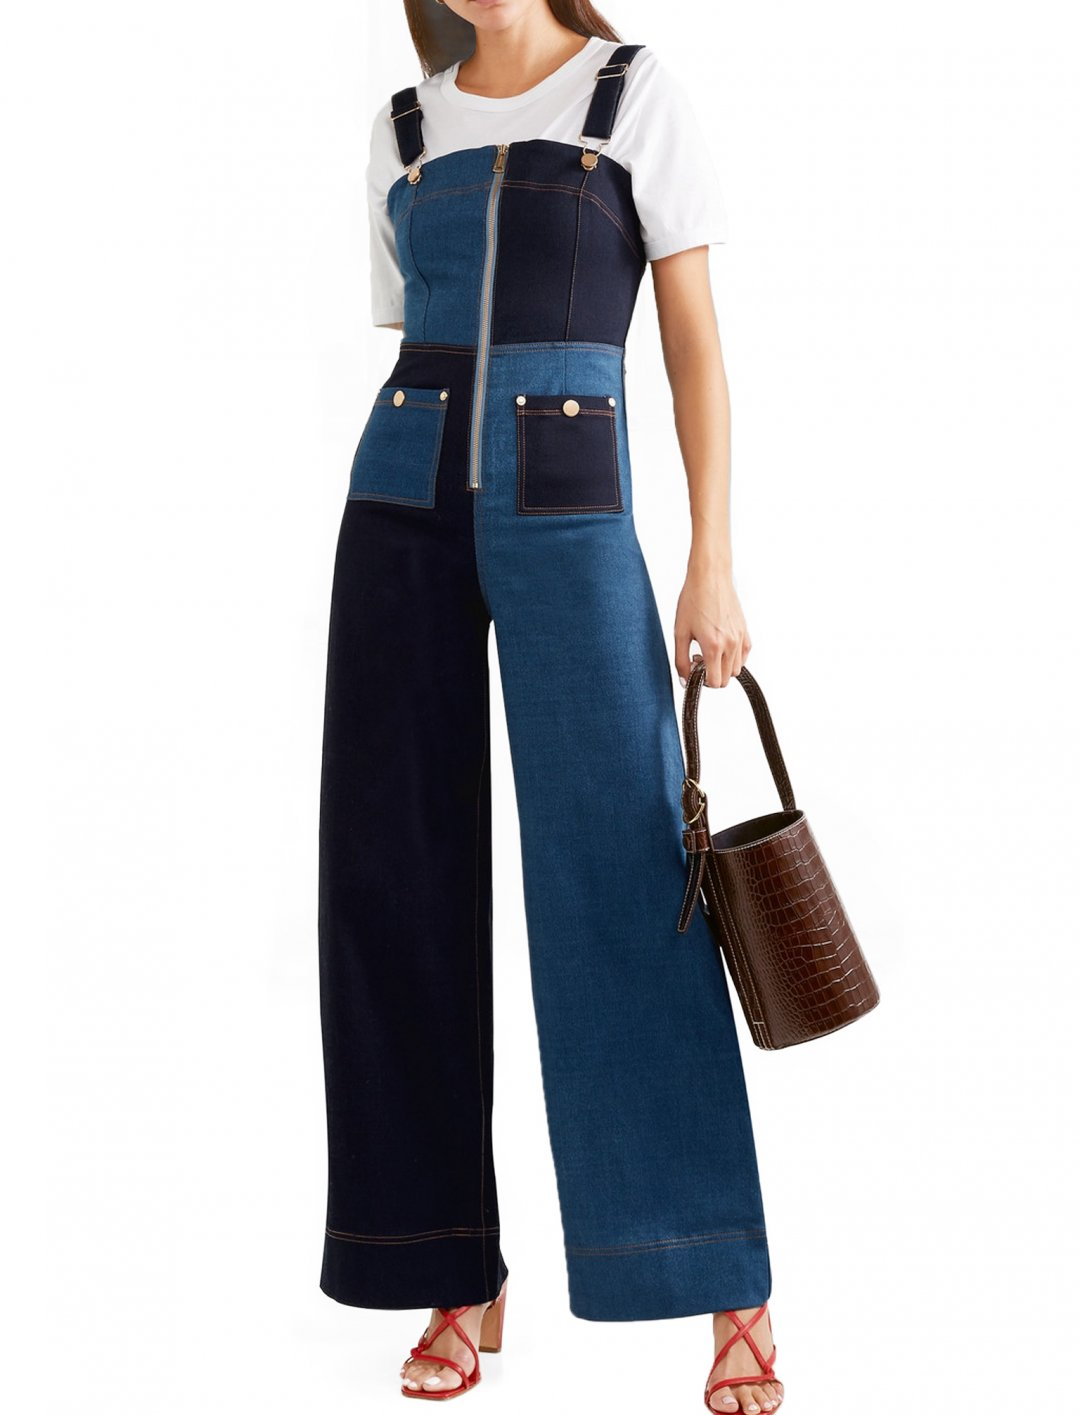 Amber Mark's Denim Overalls Clothing Alice McCall